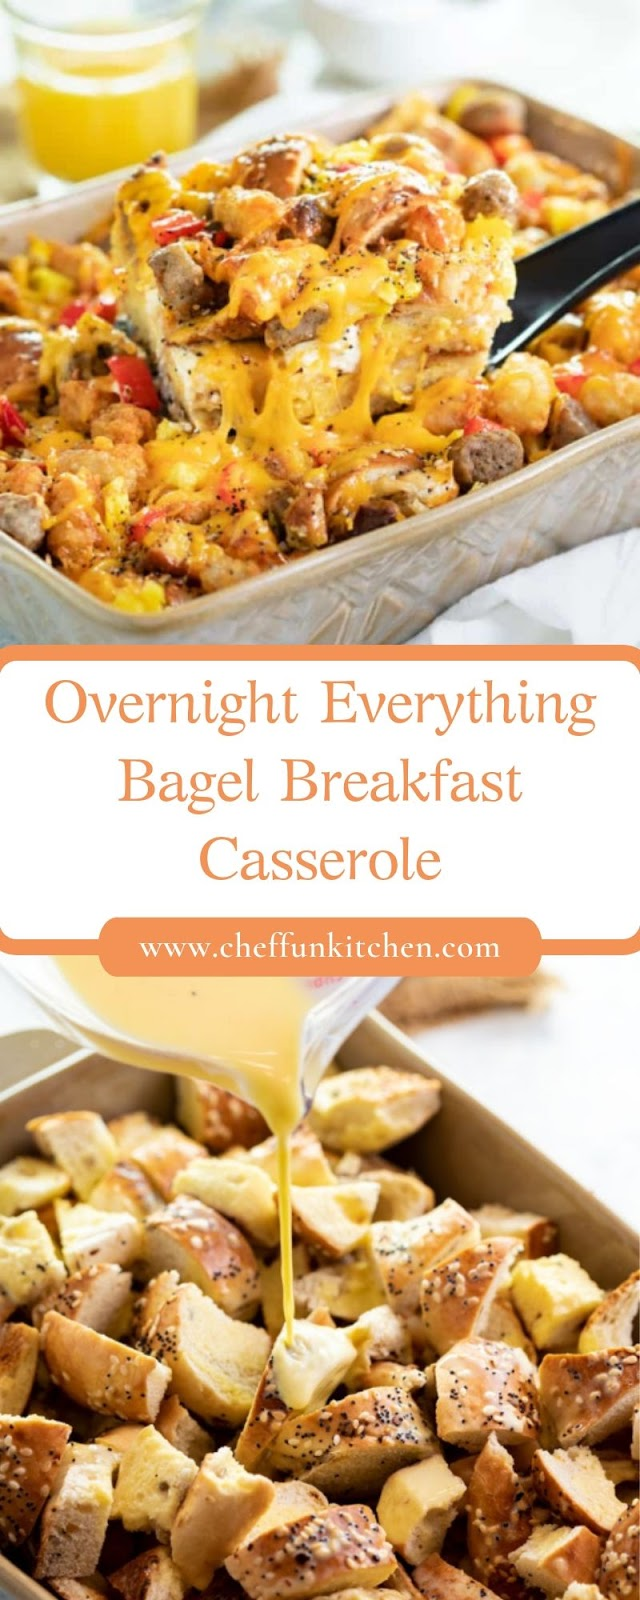 Overnight Everything Bagel Breakfast Casserole